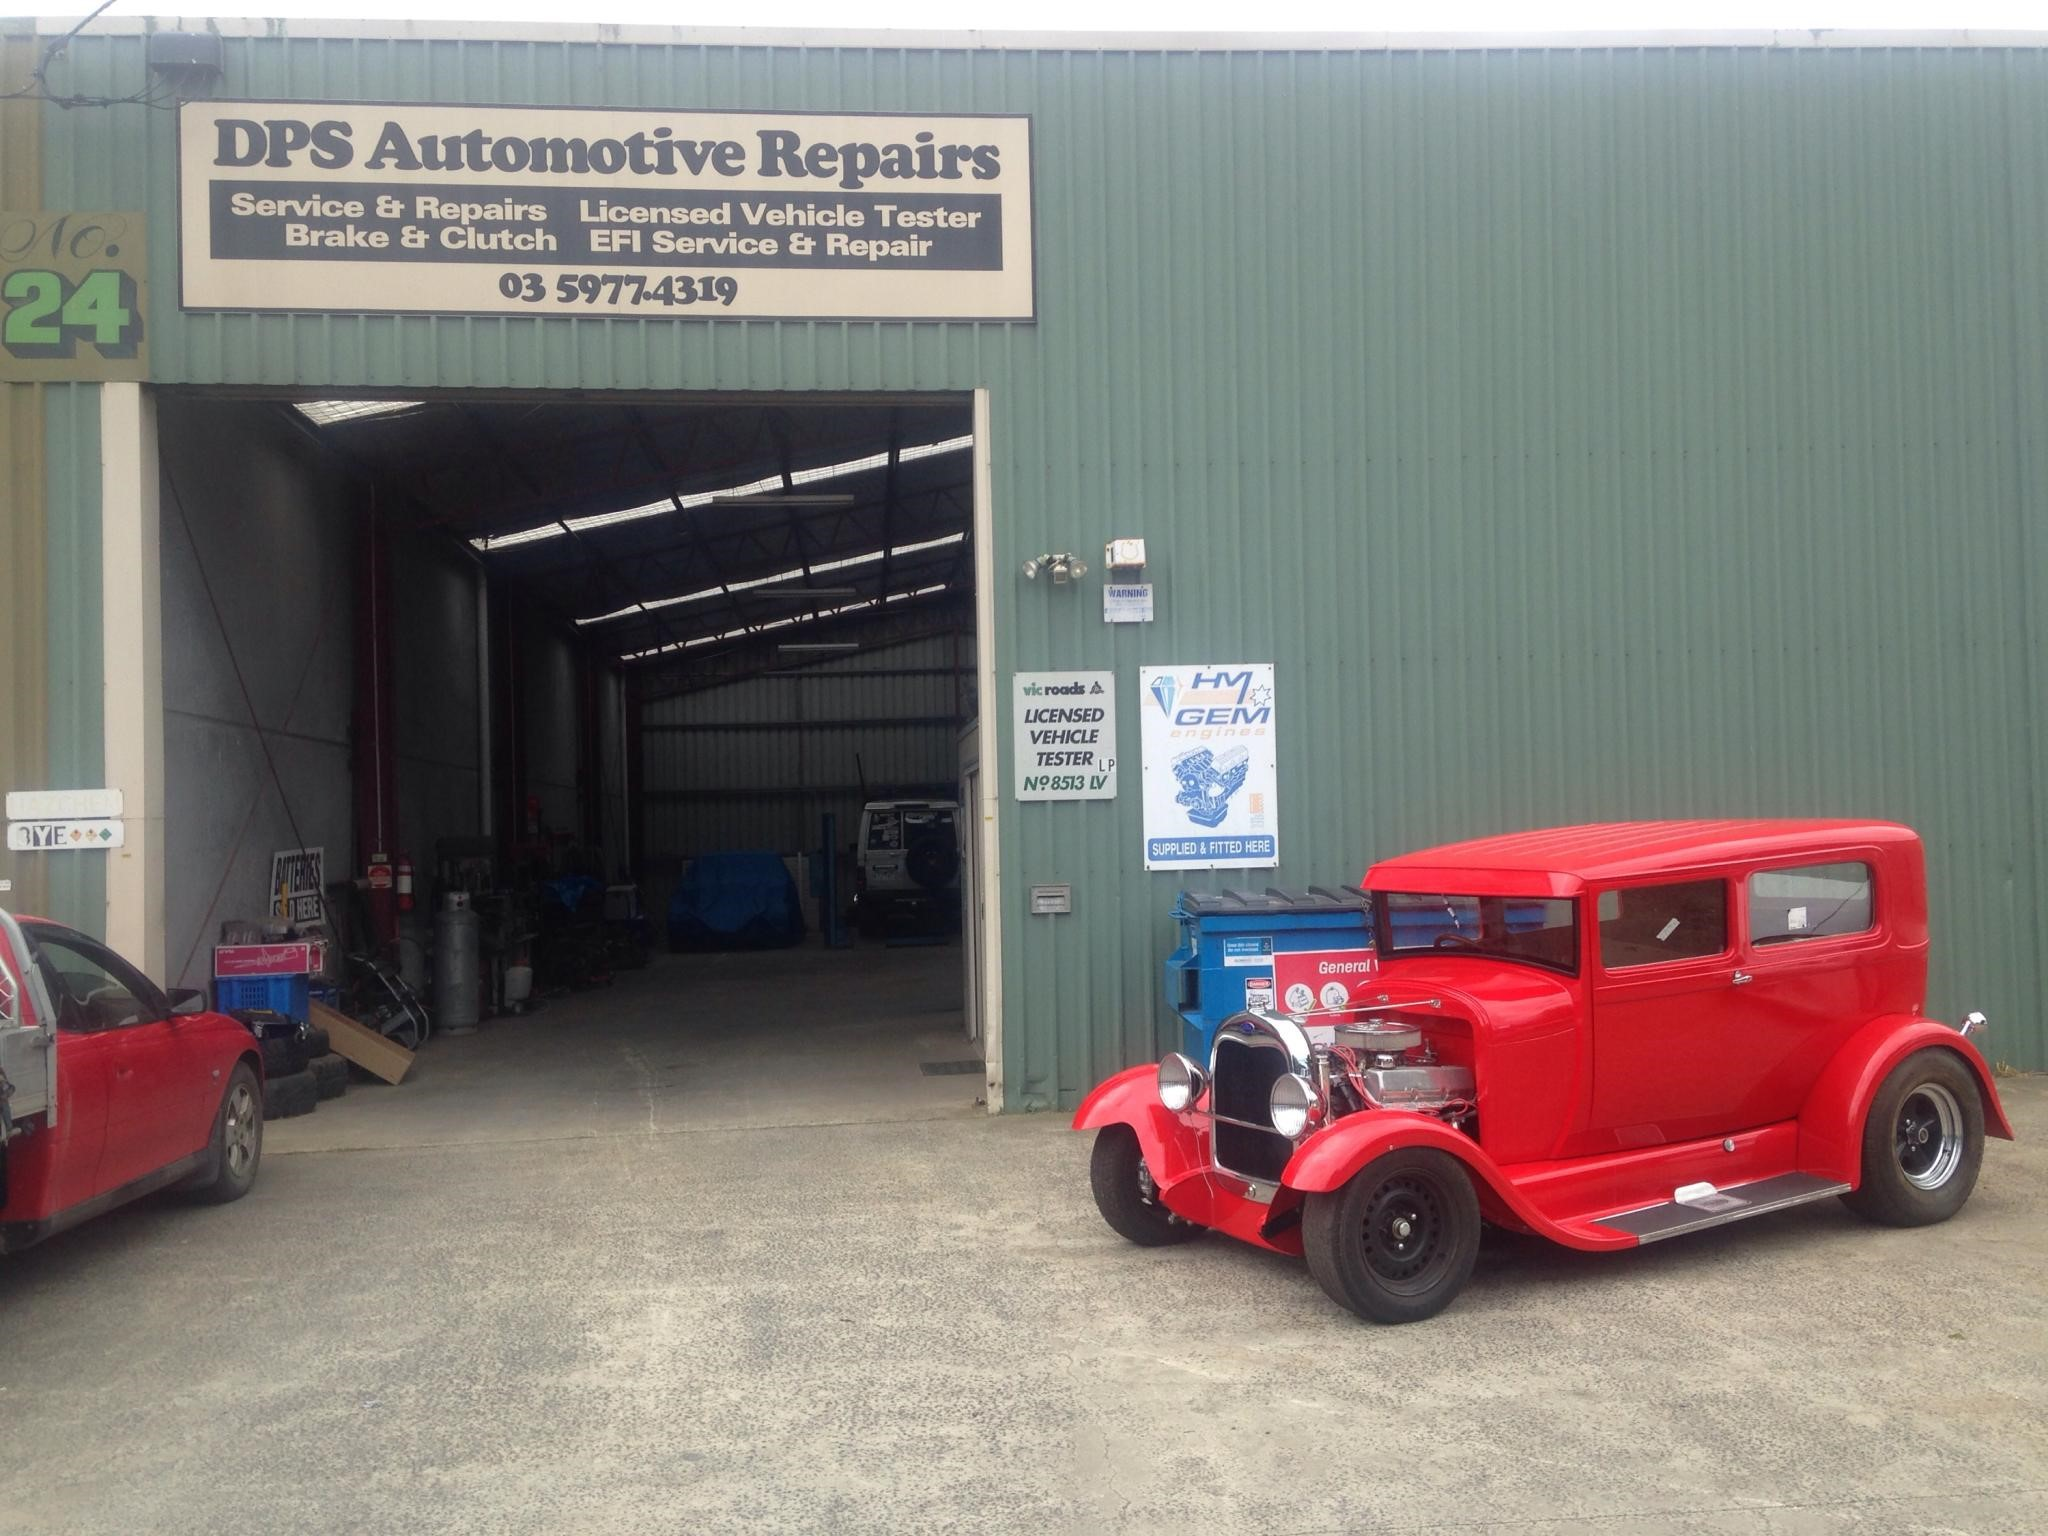 Automotive/Mechanical Workshop - Mornington Peninsula